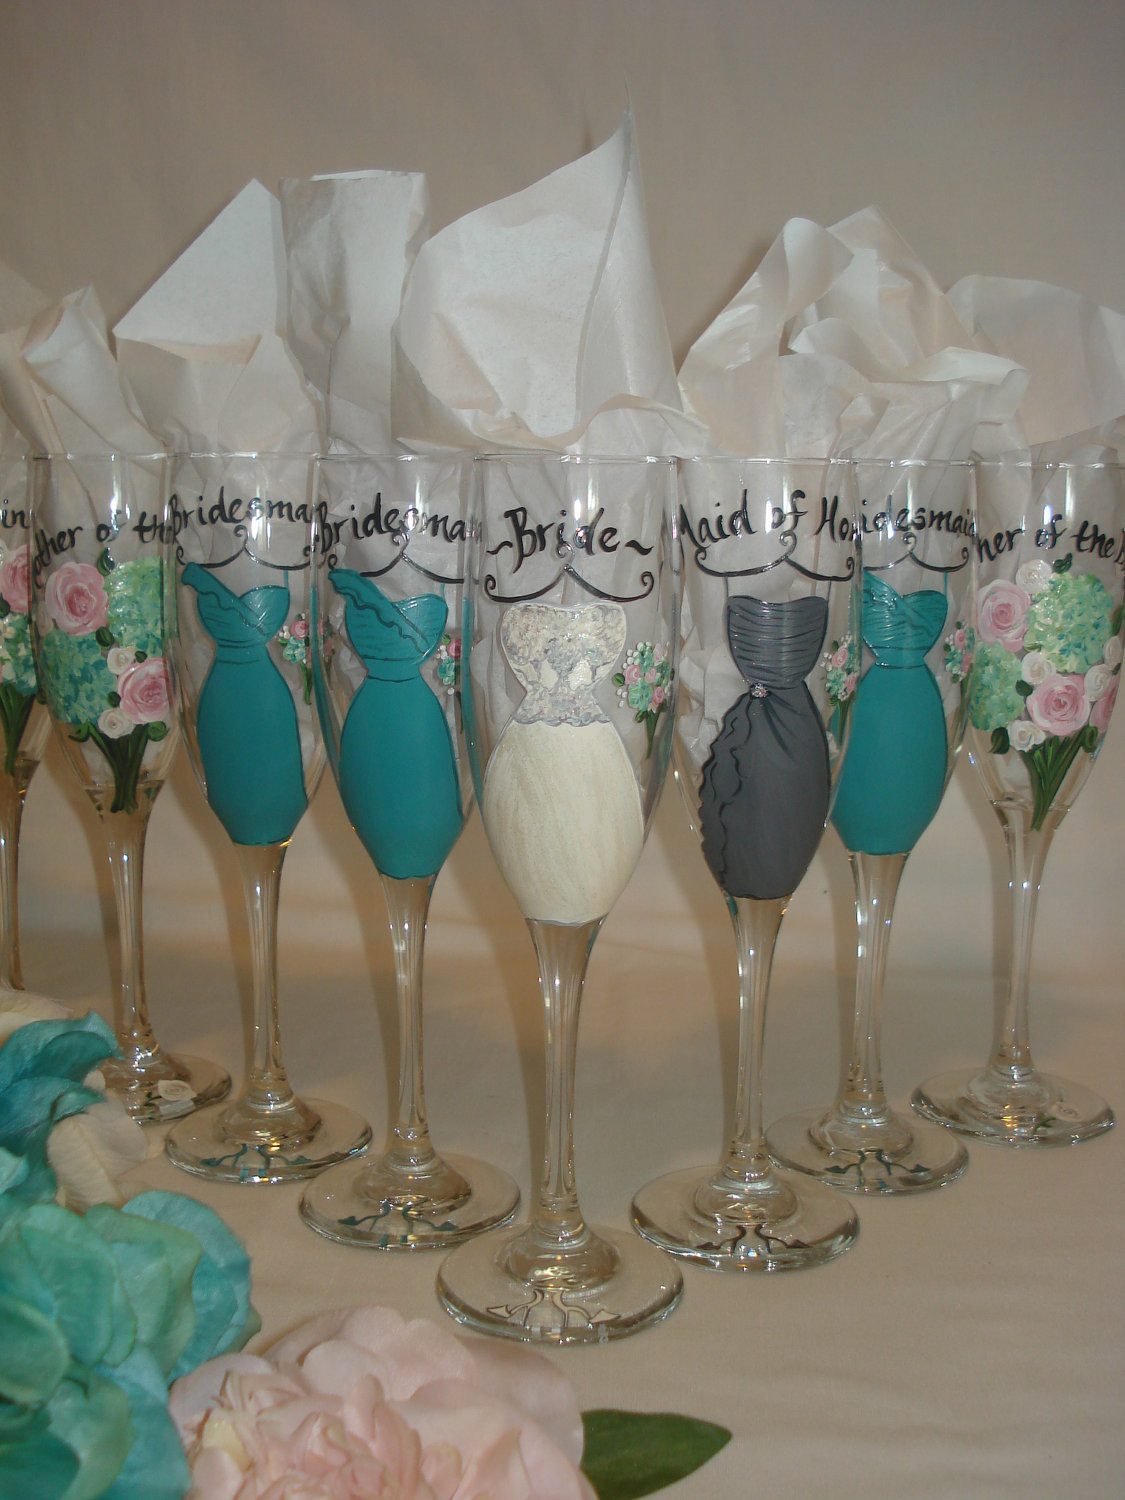 Best ideas about Wedding Party Gift Ideas . Save or Pin Hand Painted Personalized Bridal Party Champagne Glasses Now.